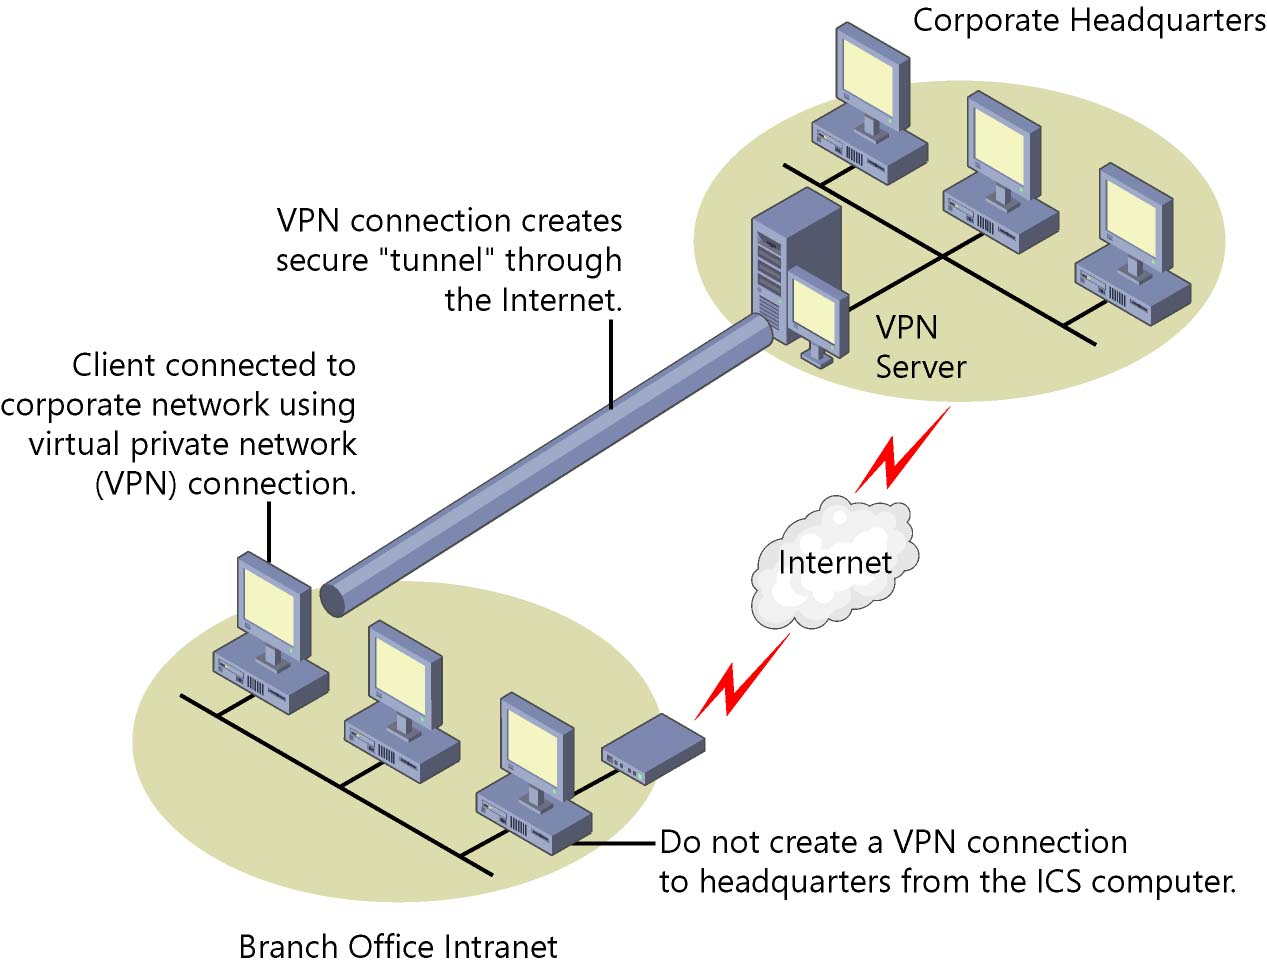 What is a VPN connection for